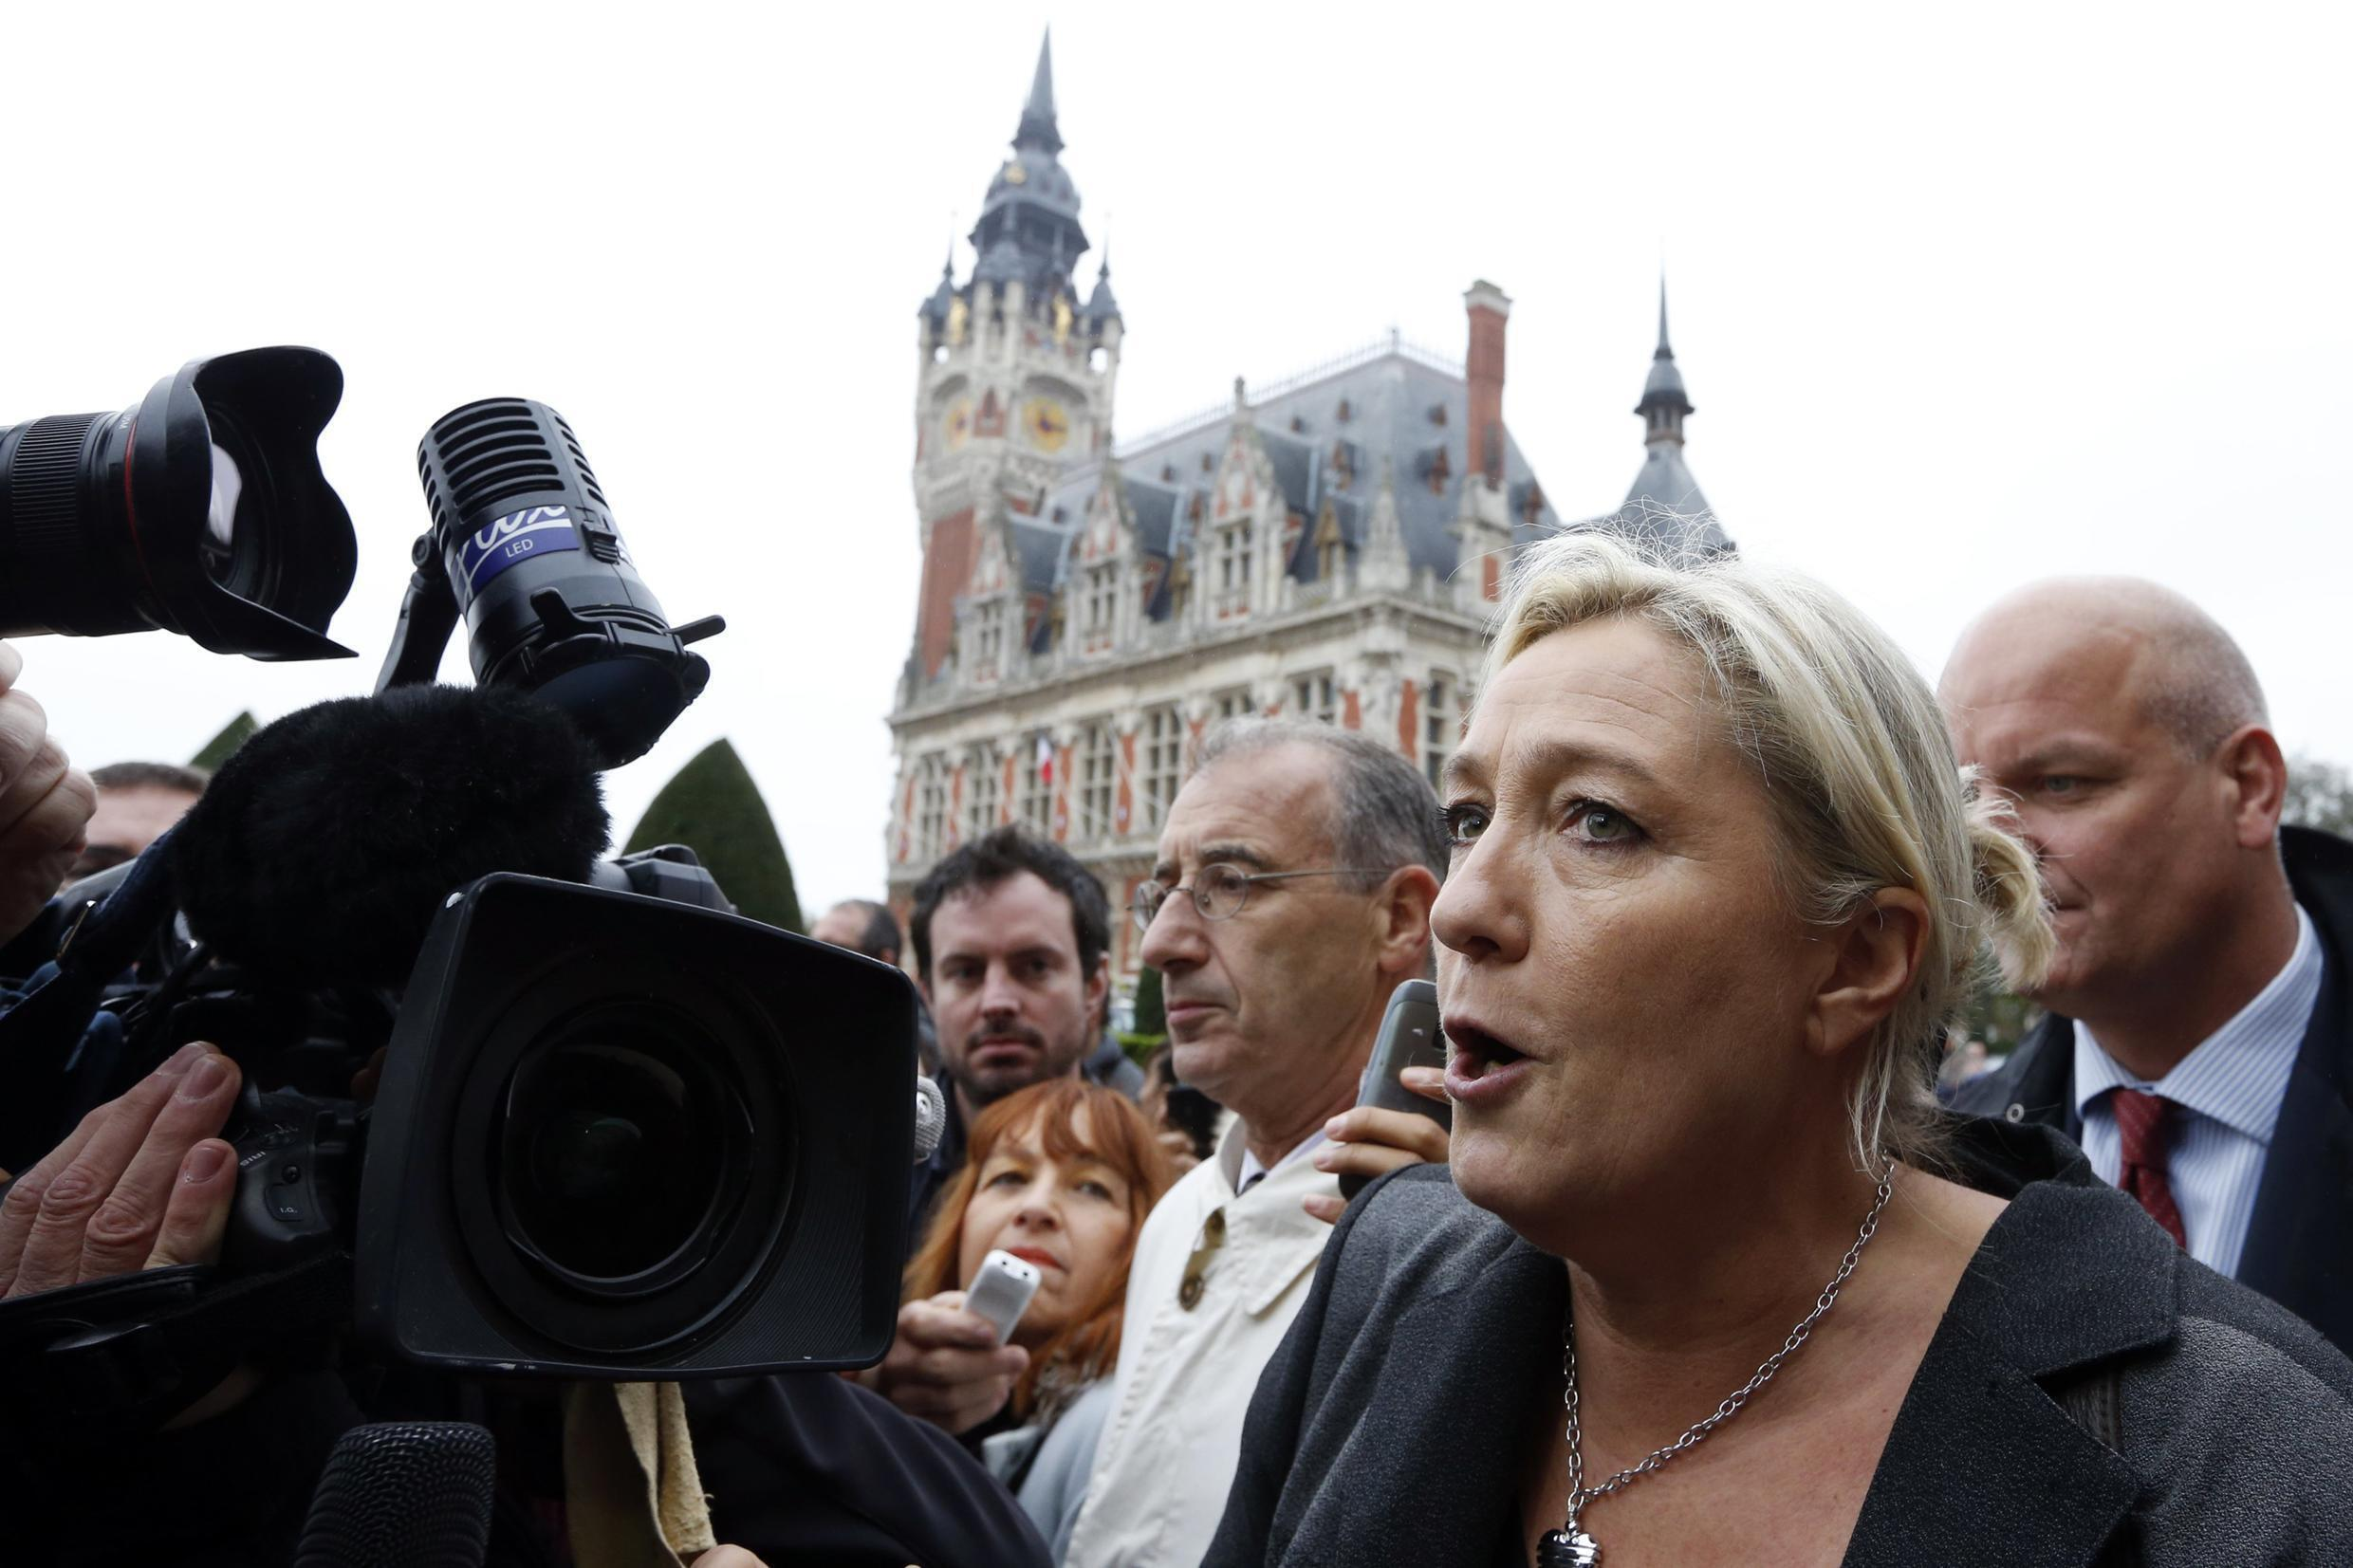 Front National leader Marine Le Pen in Calais during an earlier controversy about migration